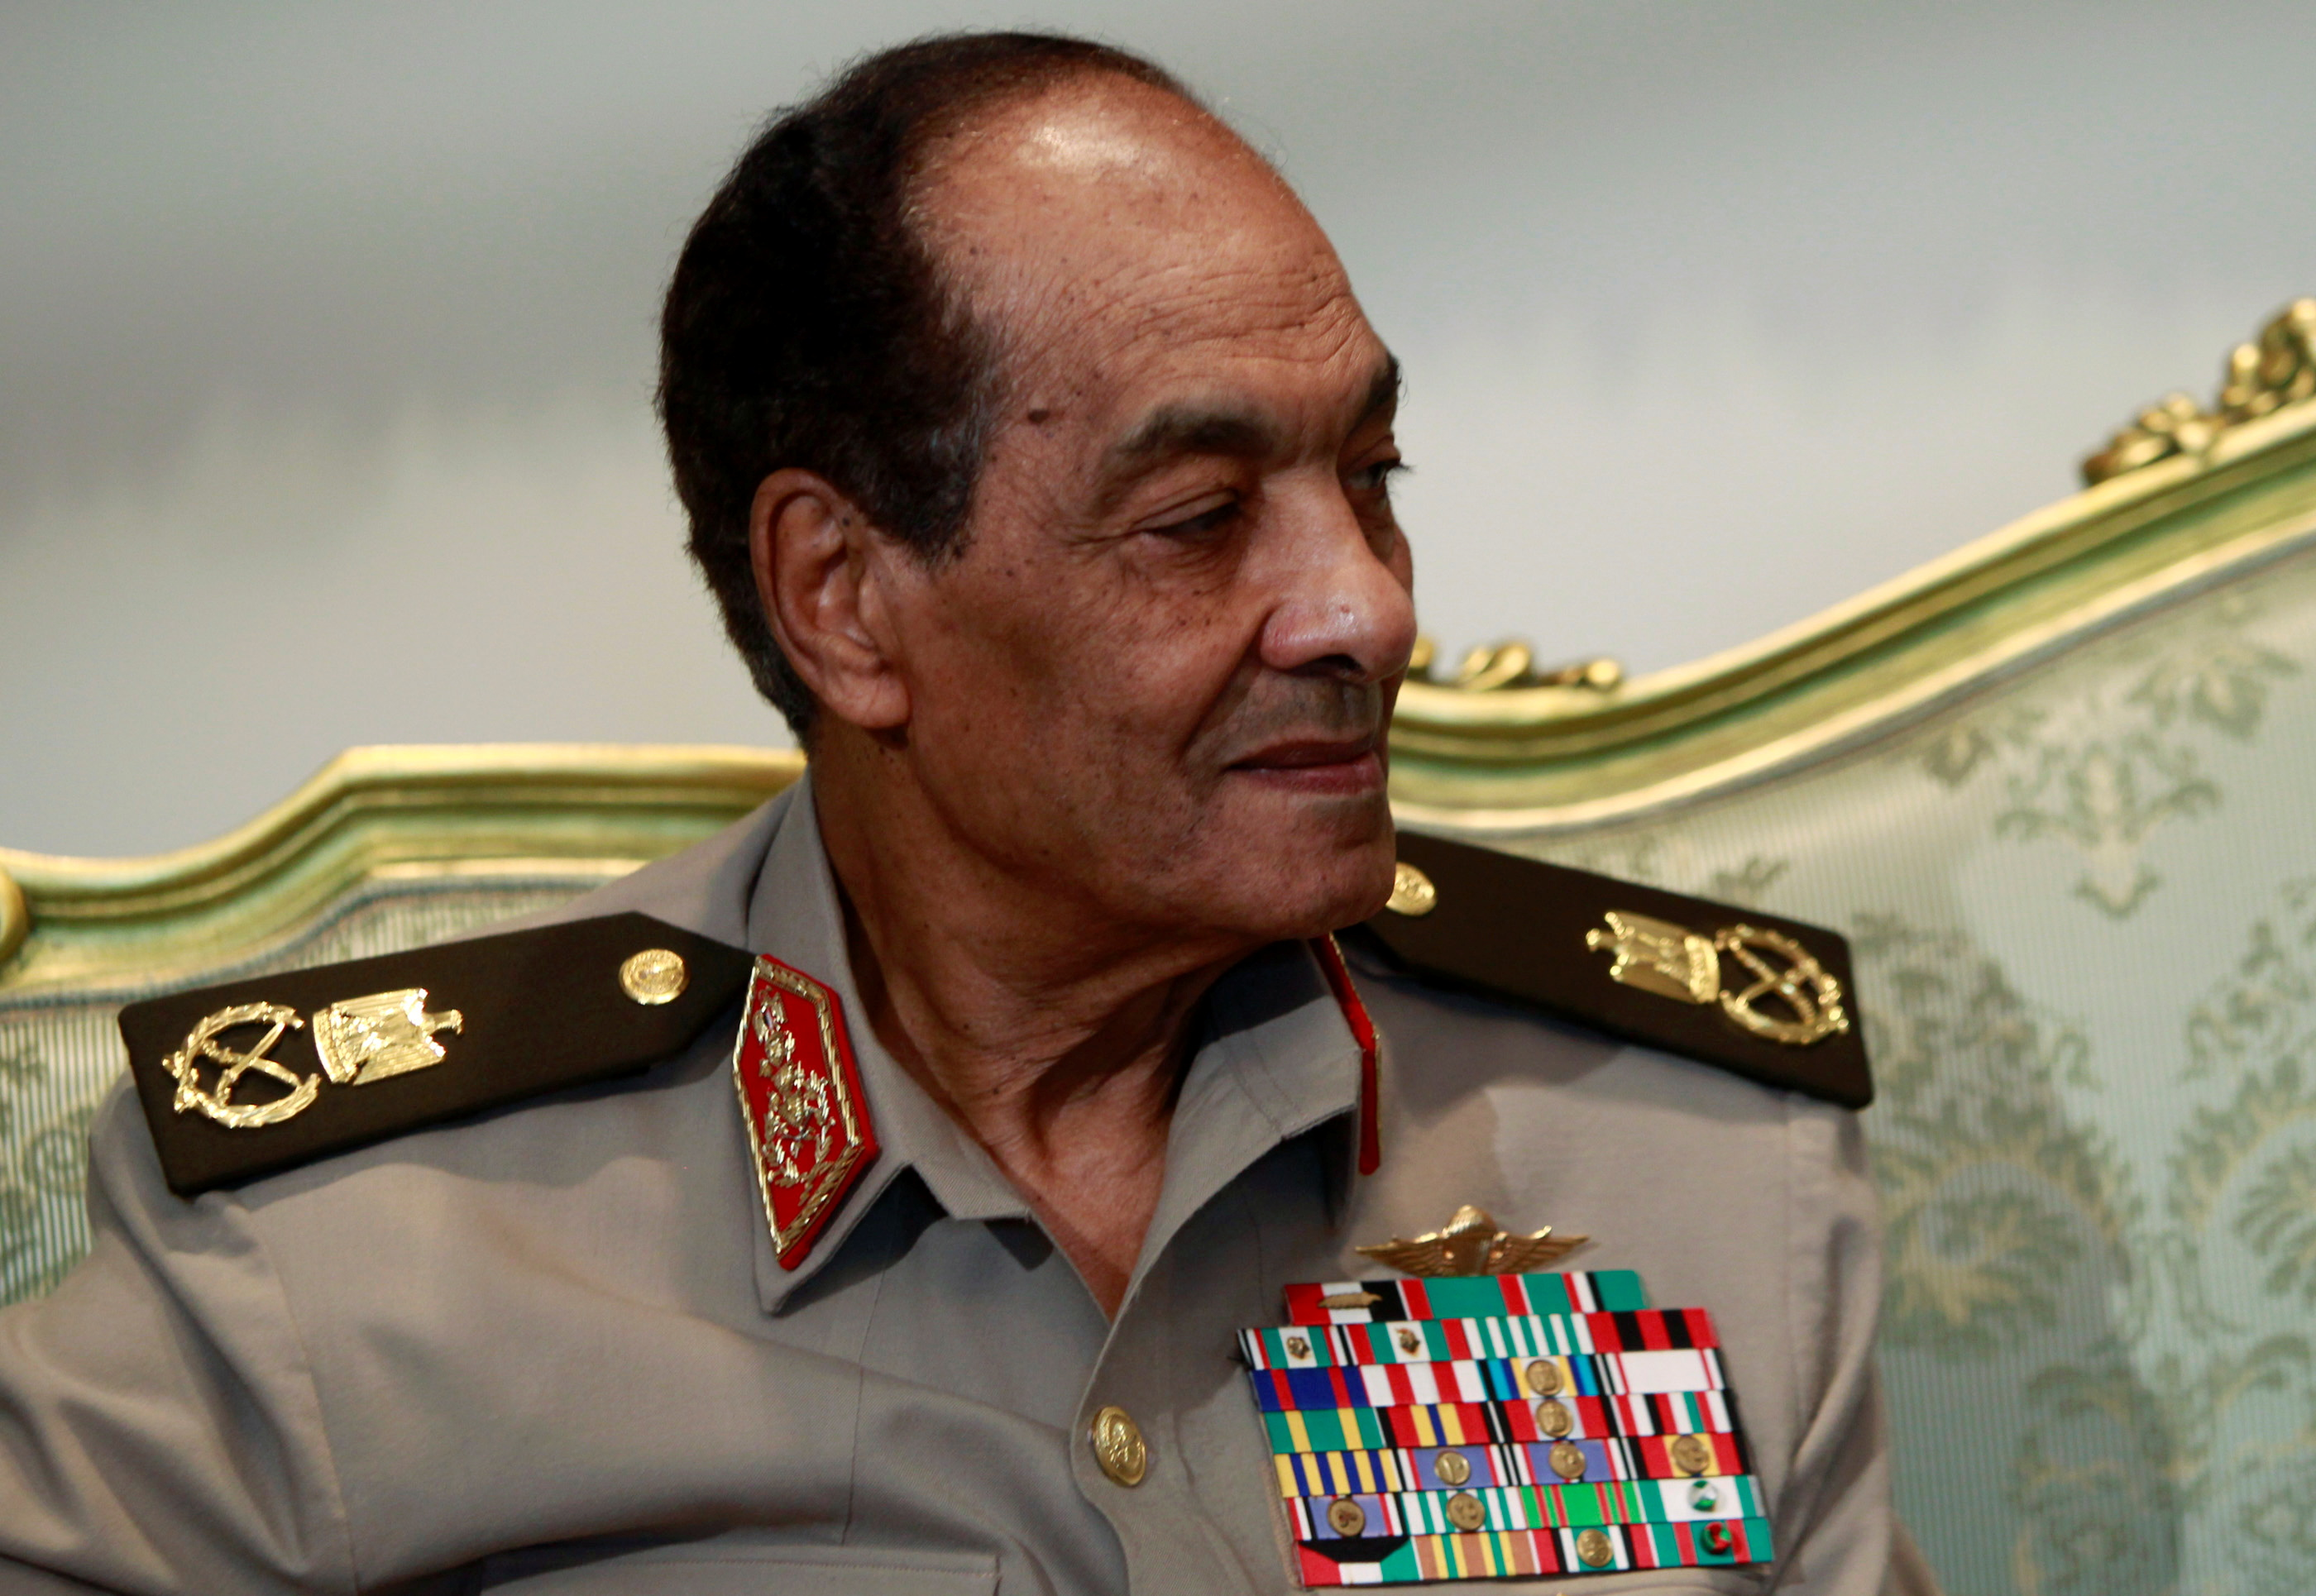 Field Marshal Hussein Tantawi attends a meeting with Egypt's president Mohamed Mursi and U.S. Secretary of Defense Leon Panetta at the presidential palace in Cairo July 31, 2012. REUTERS/Amr Abdallah Dalsh/File Photo